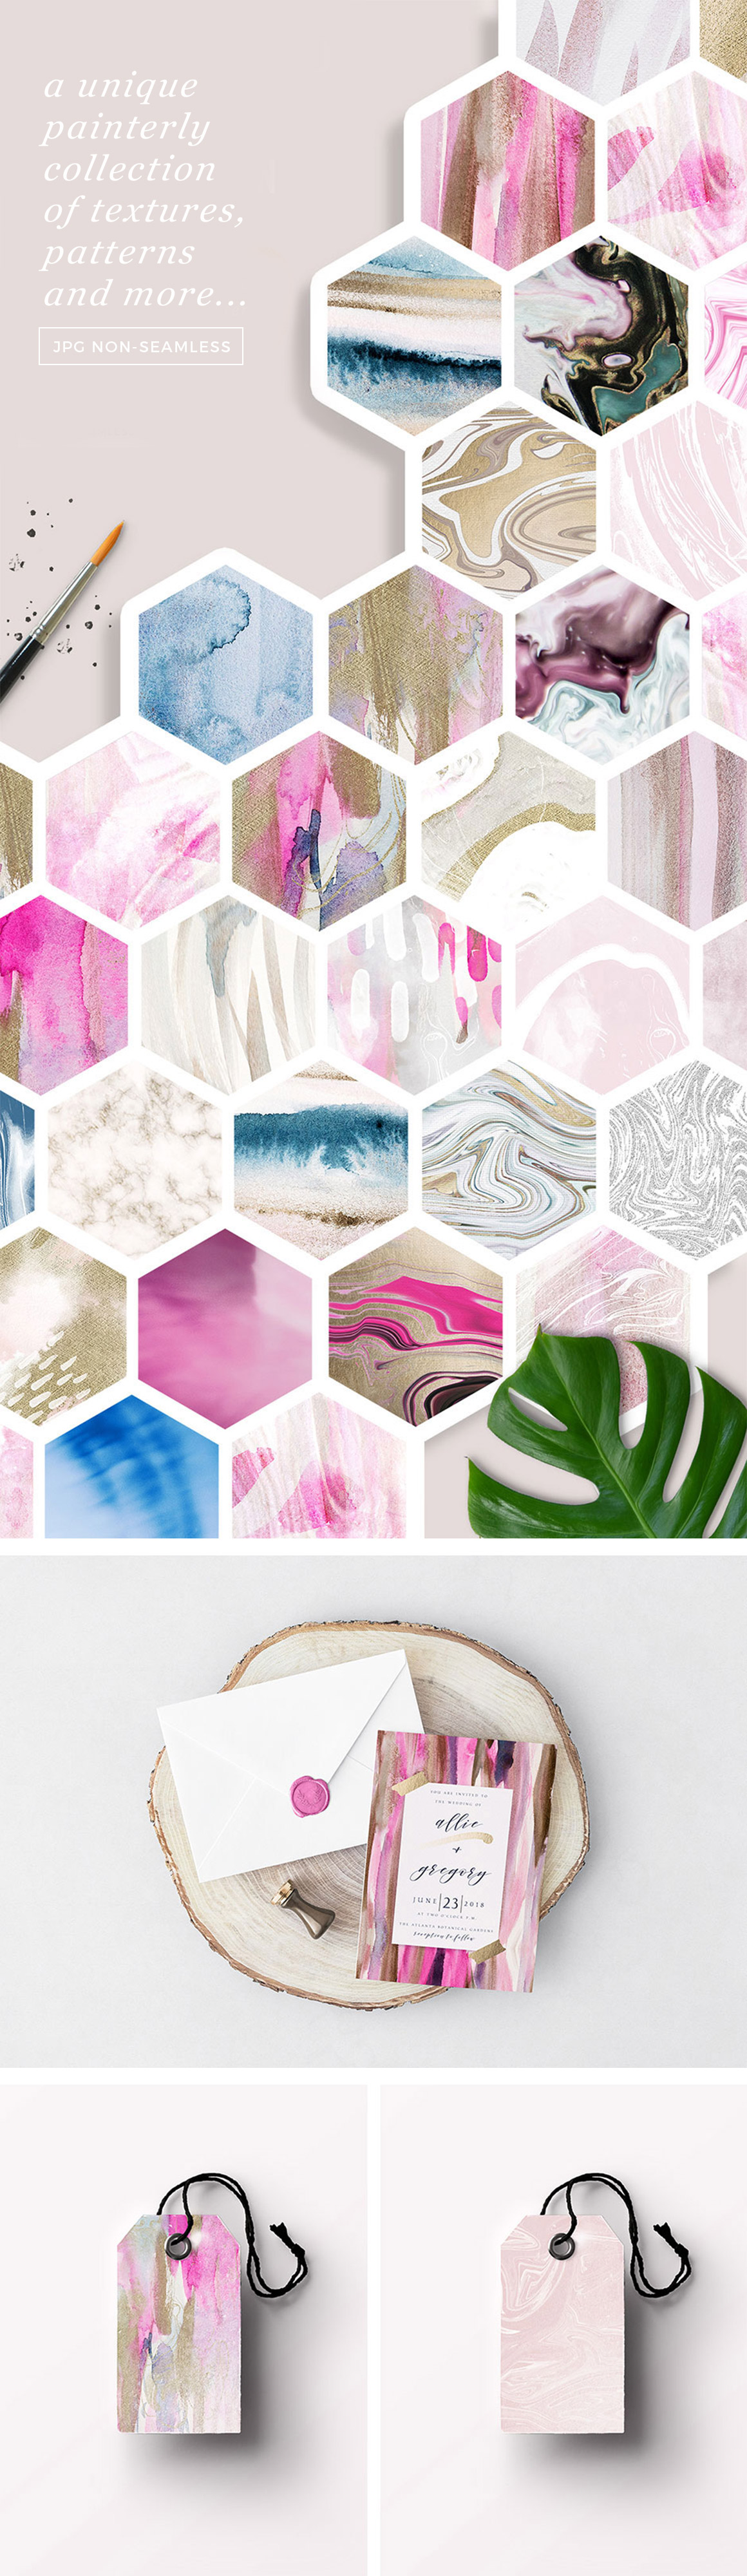 Modern Fluid & More Texture Background Collection